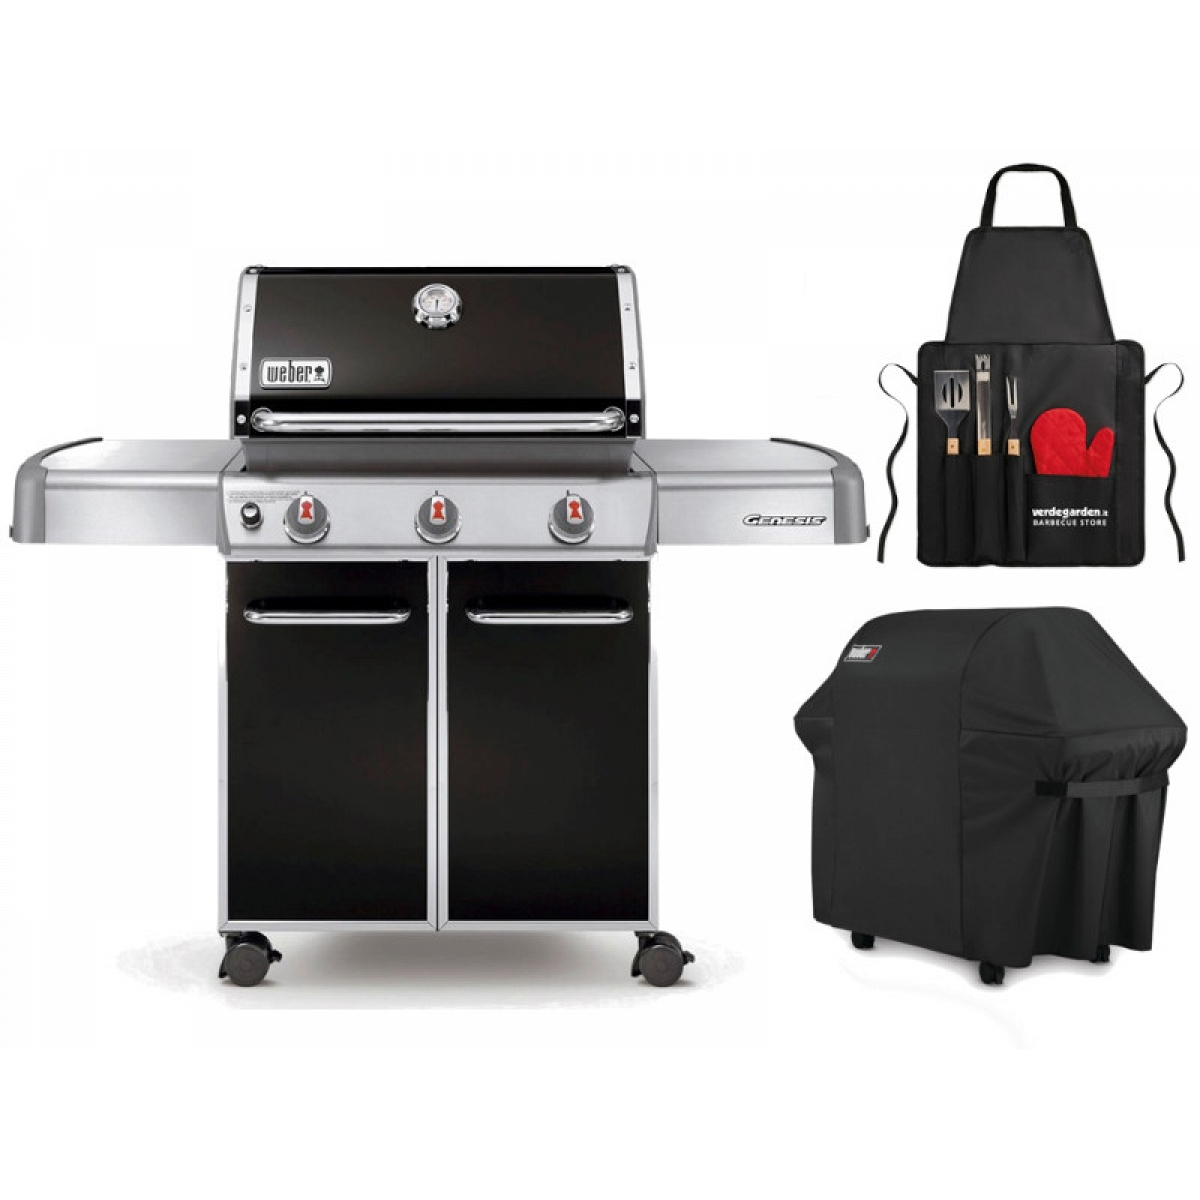 gas barbecue weber with 3 burners. Black Bedroom Furniture Sets. Home Design Ideas